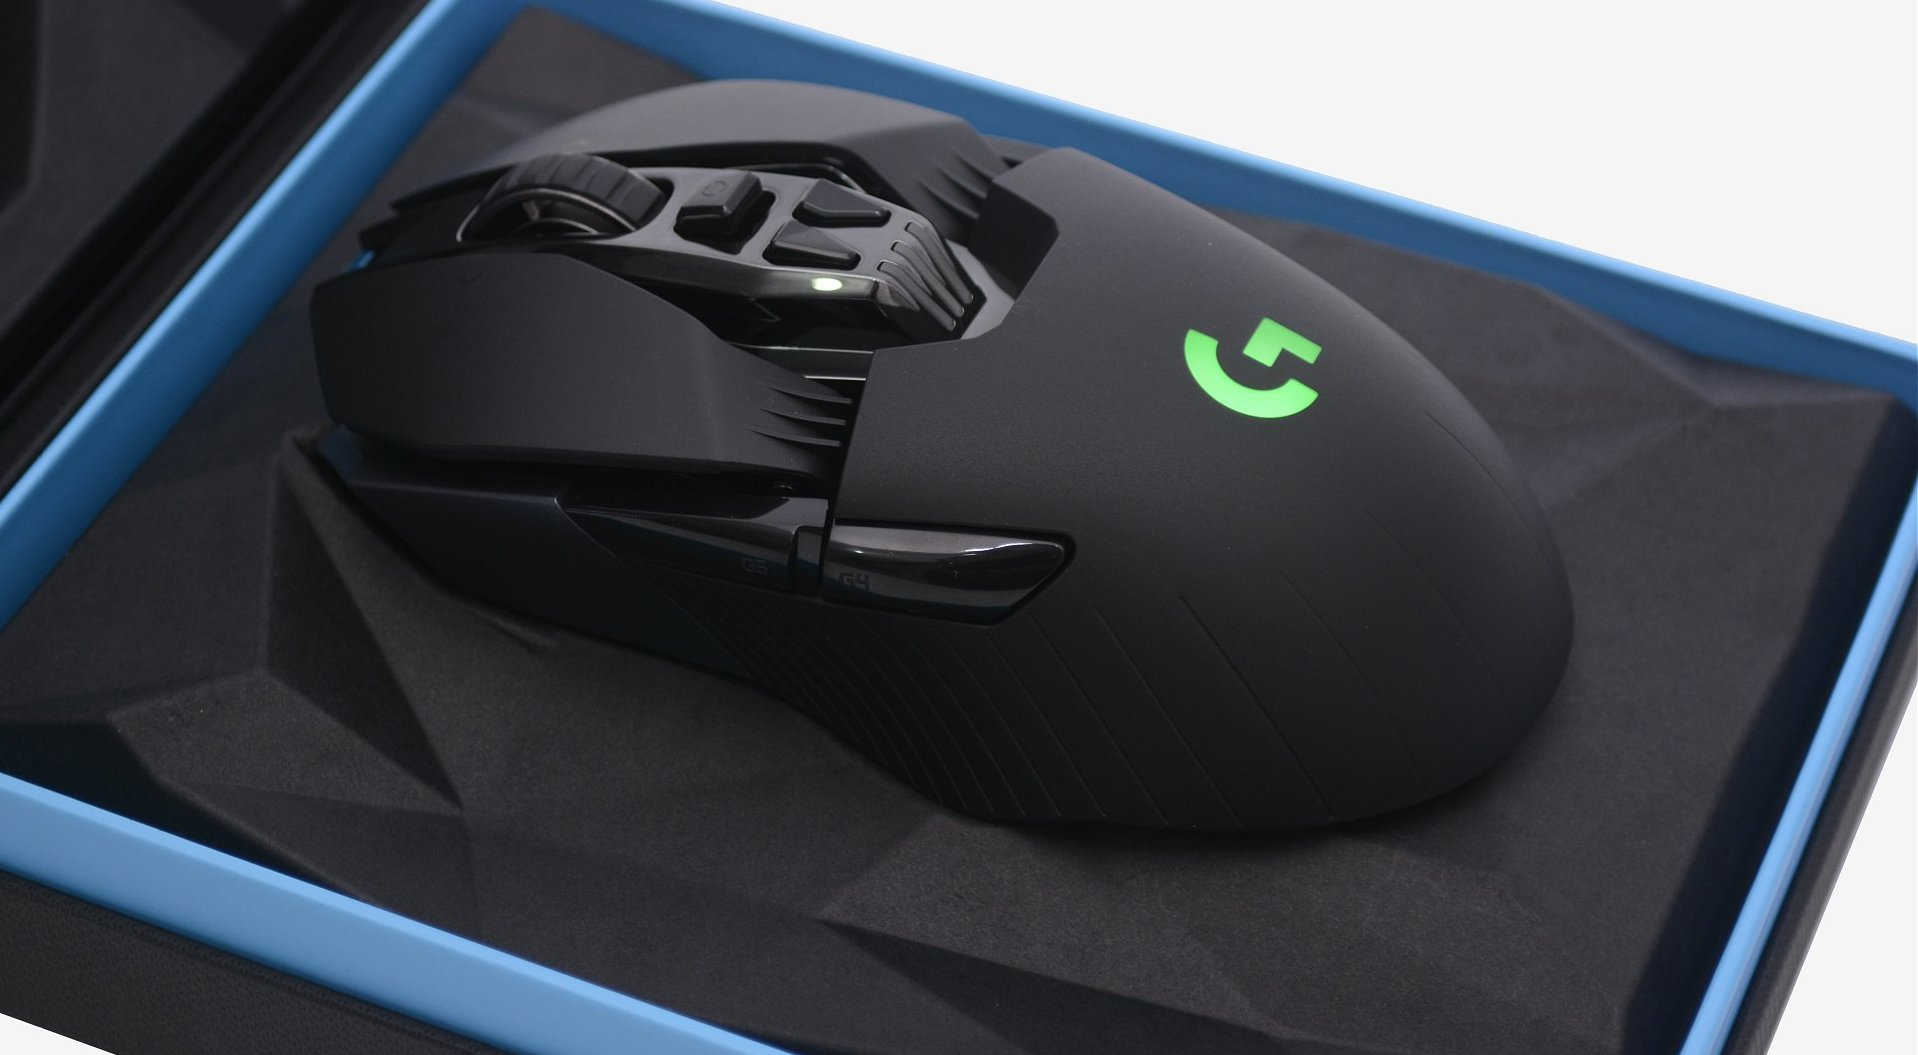 Logitech G900 Chaos Spectrum Wireless Gaming Mouse Review - TechSpot